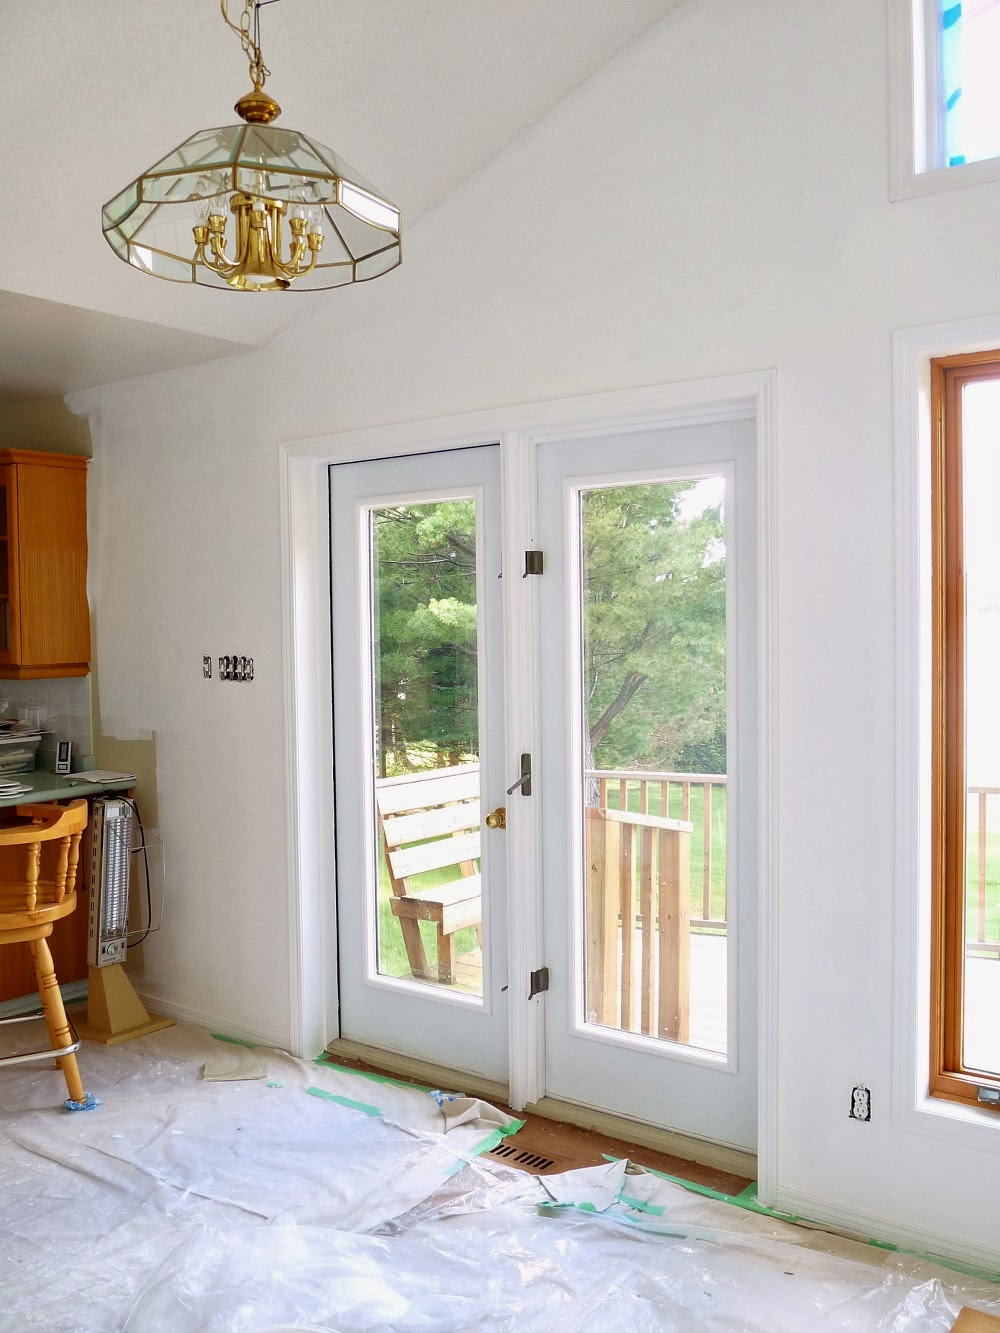 Paint door trim white